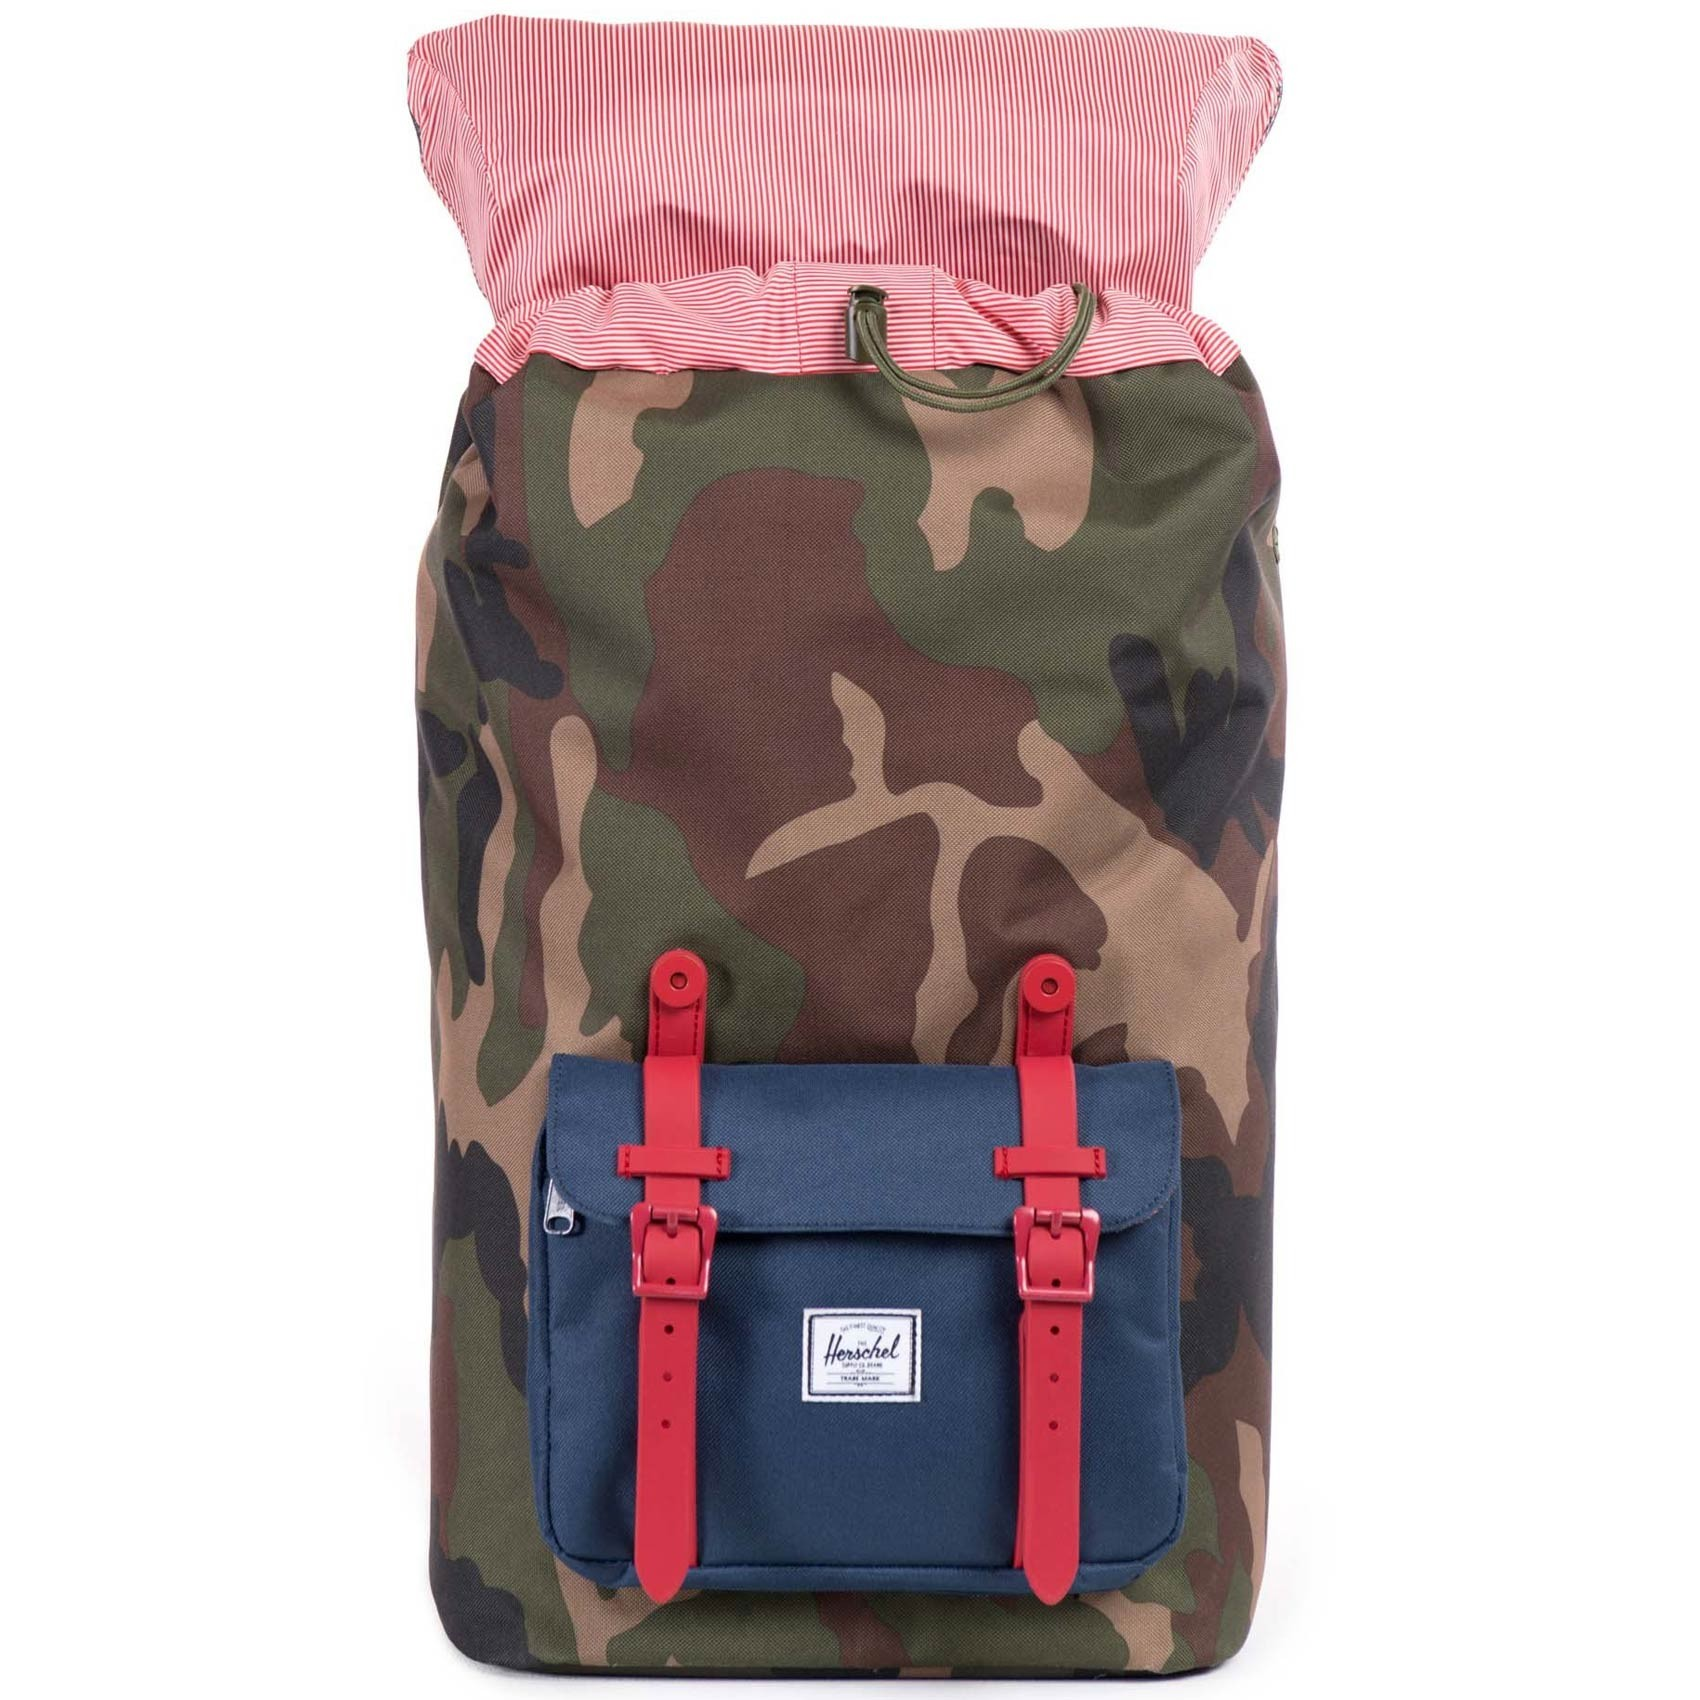 dbc5936f46 Herschel Little America Backpack - Woodland Camo Navy Red